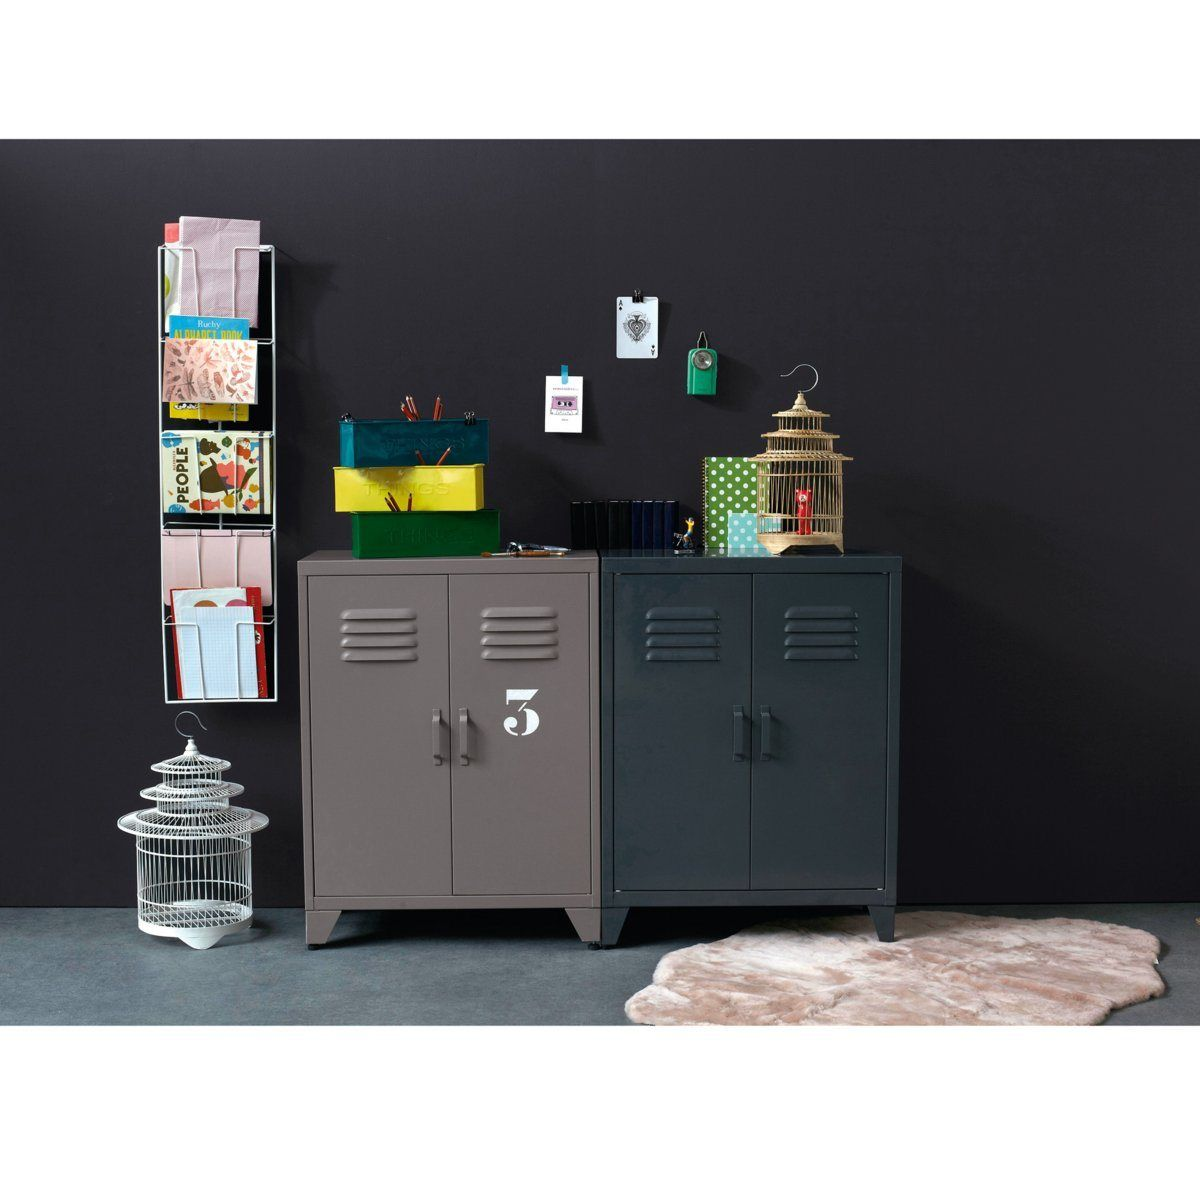 Meuble d 39 entr e armoire locker 2 coloris am pm la redoute am pm la redoute pinterest - Meuble d entree la redoute ...